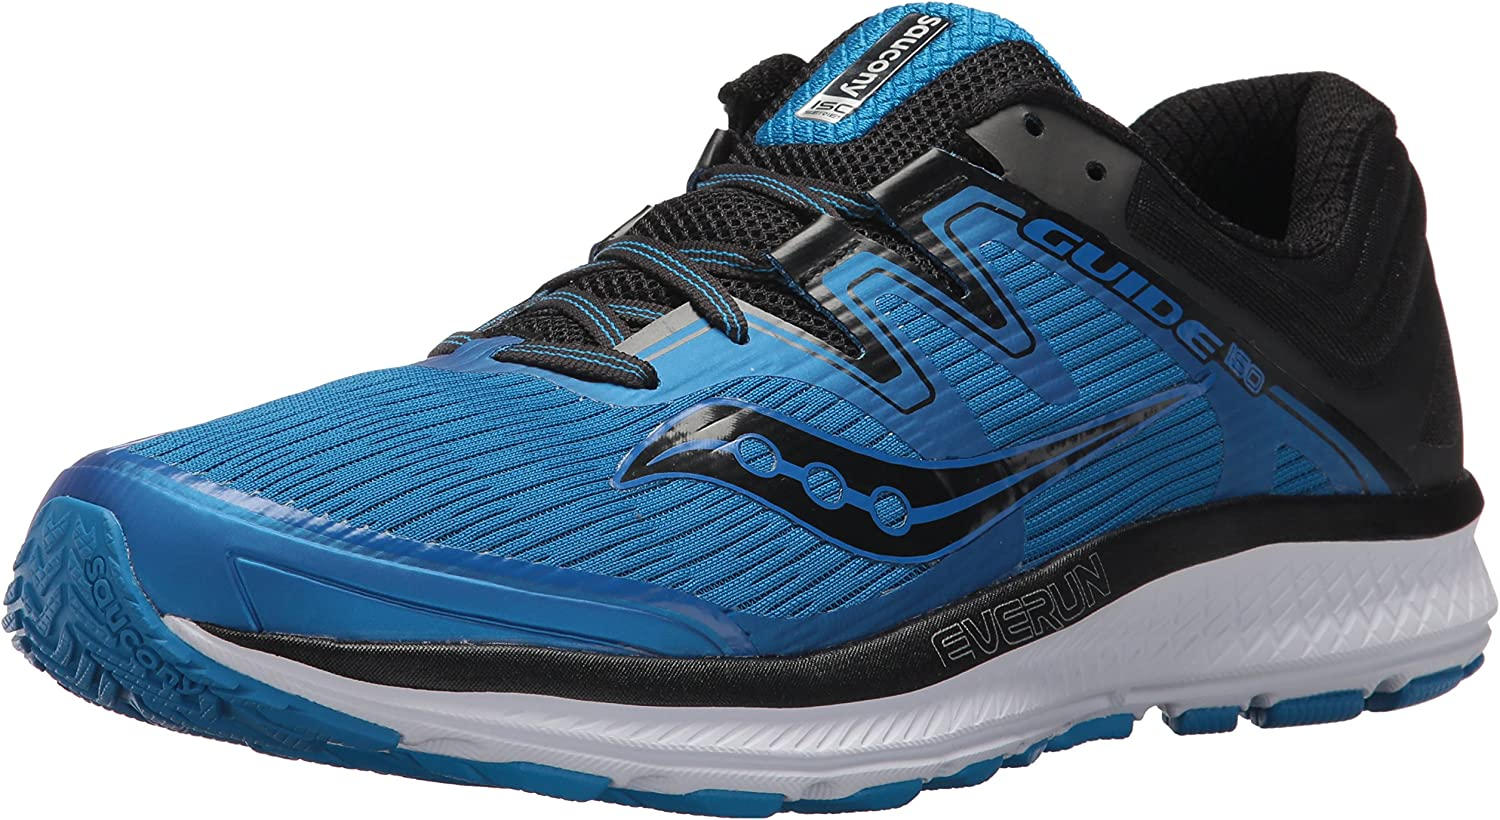 Saucony Men's Guide Iso Running shoes, bluee Black, 7.5 Medium US